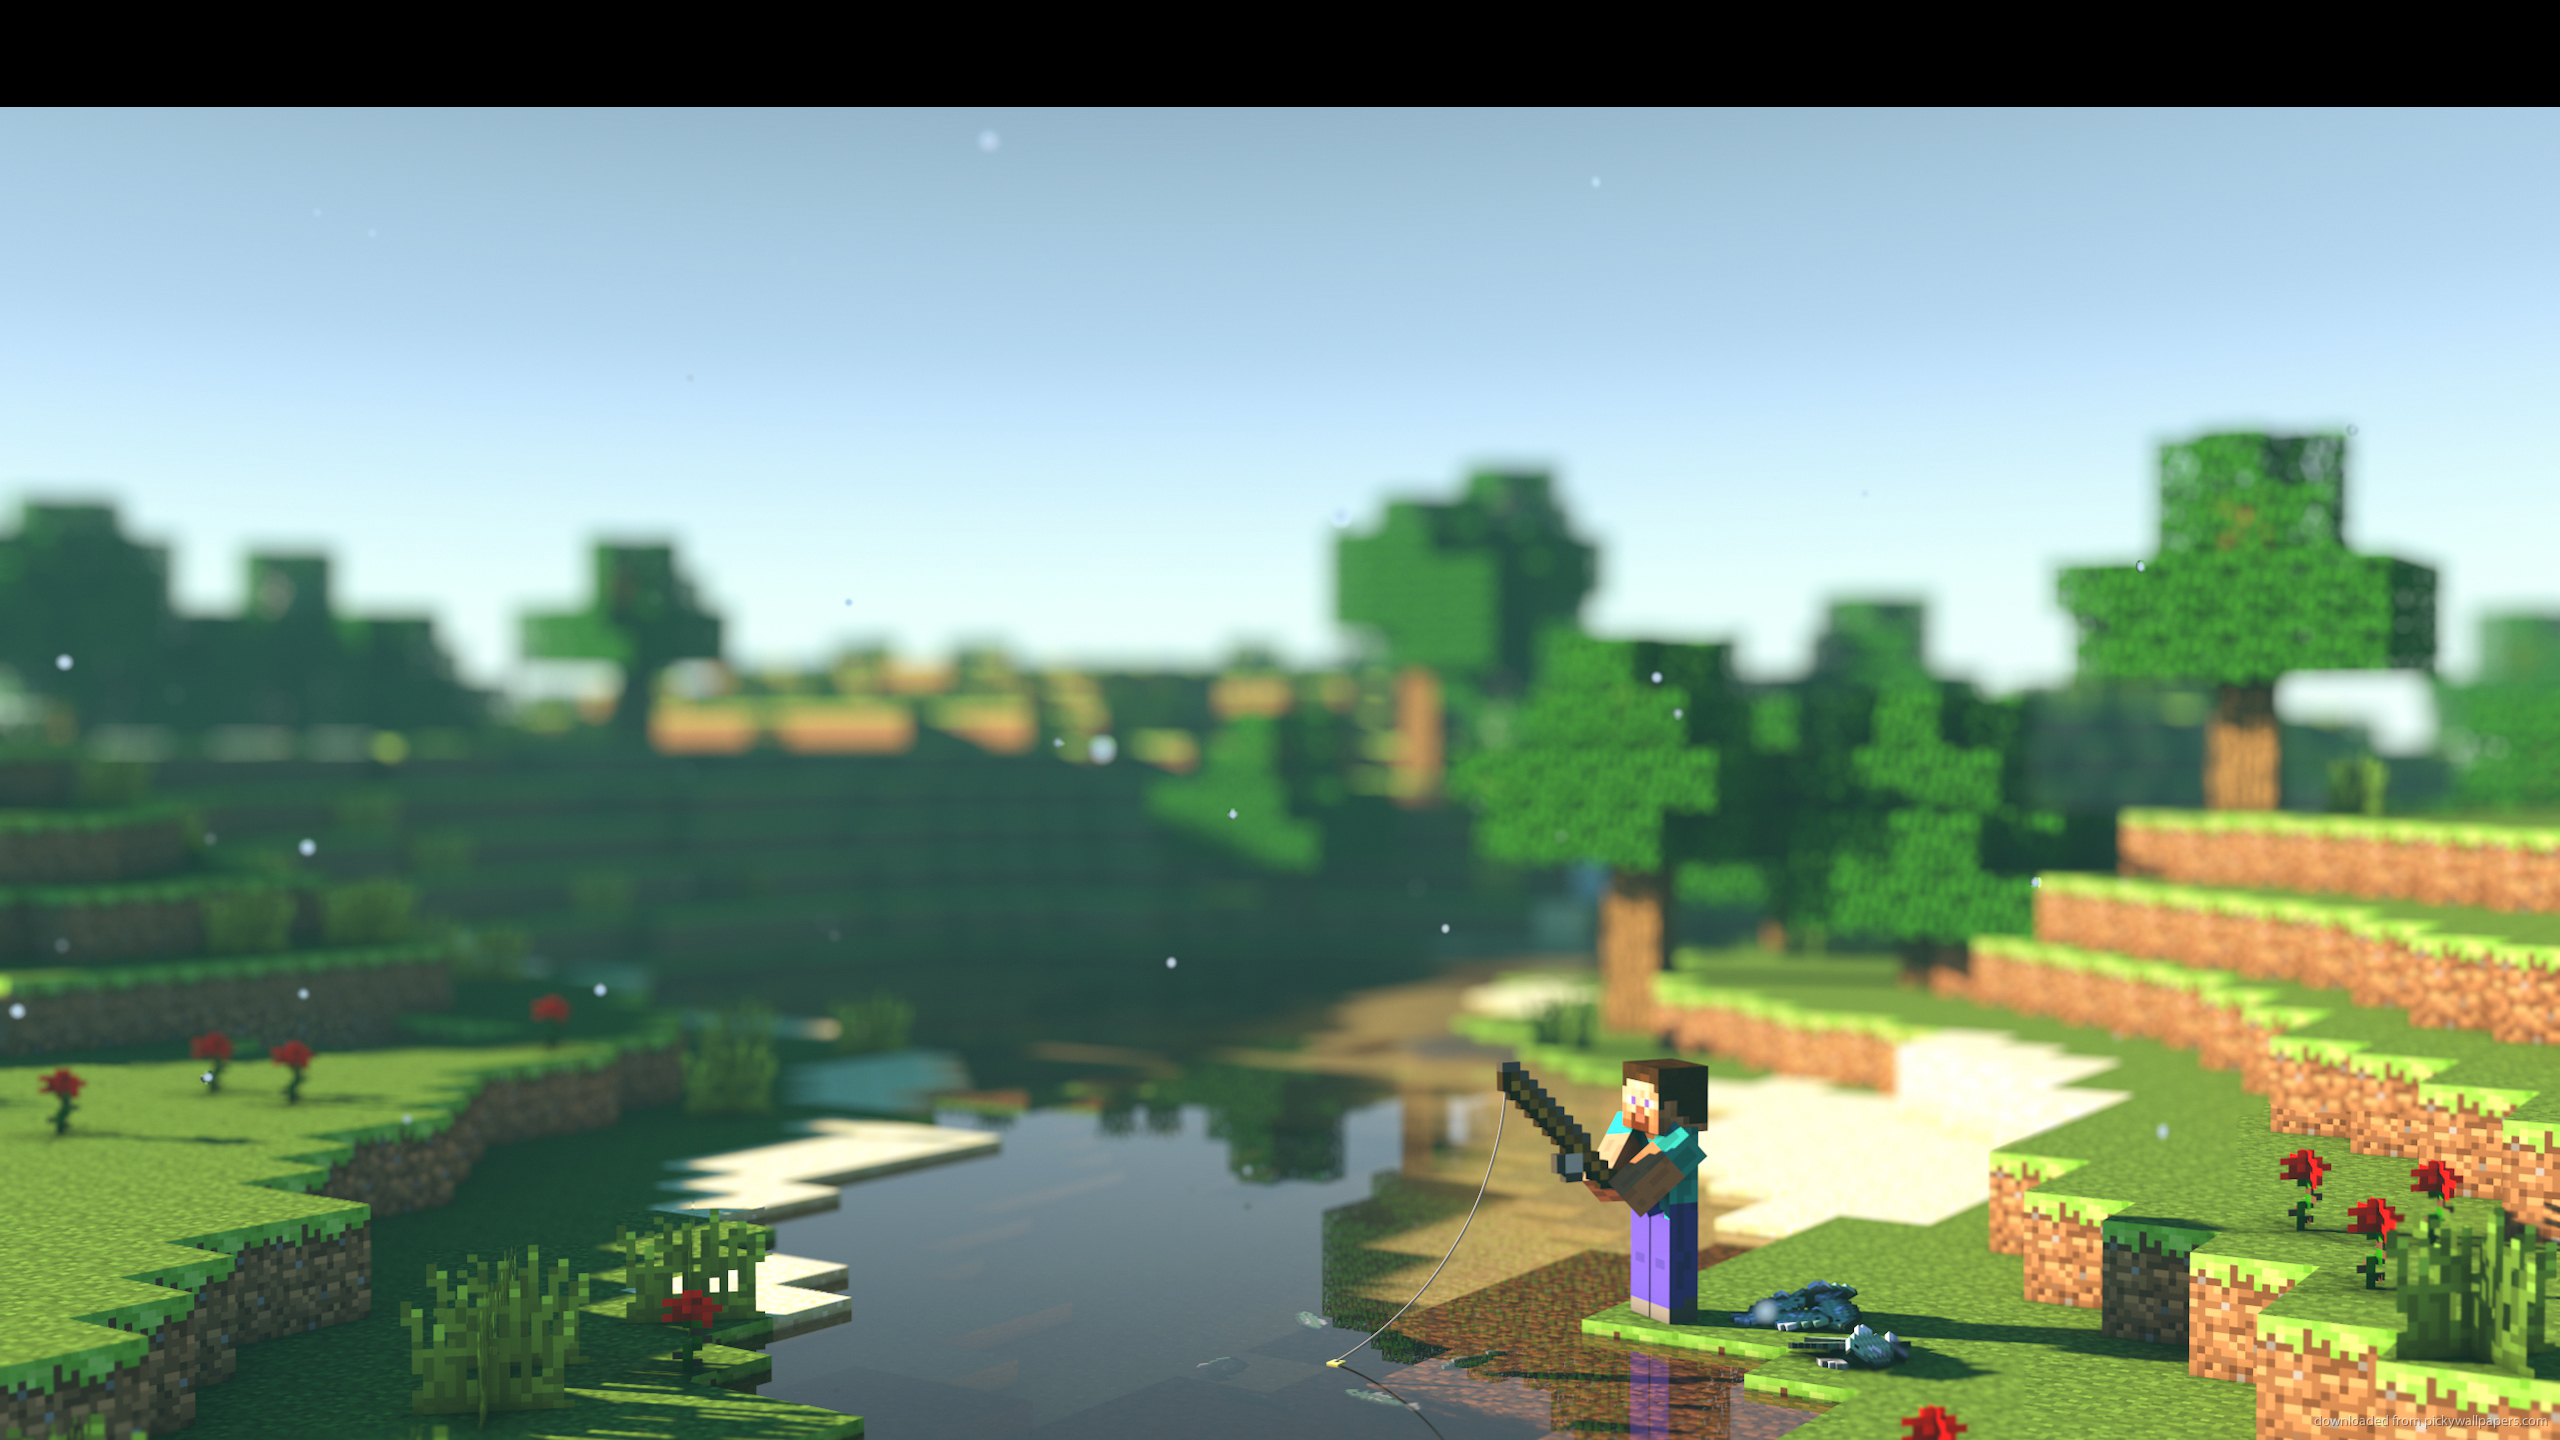 Minecraft Wallpapers майнкрафт 2560 х 1440 61645 Hd